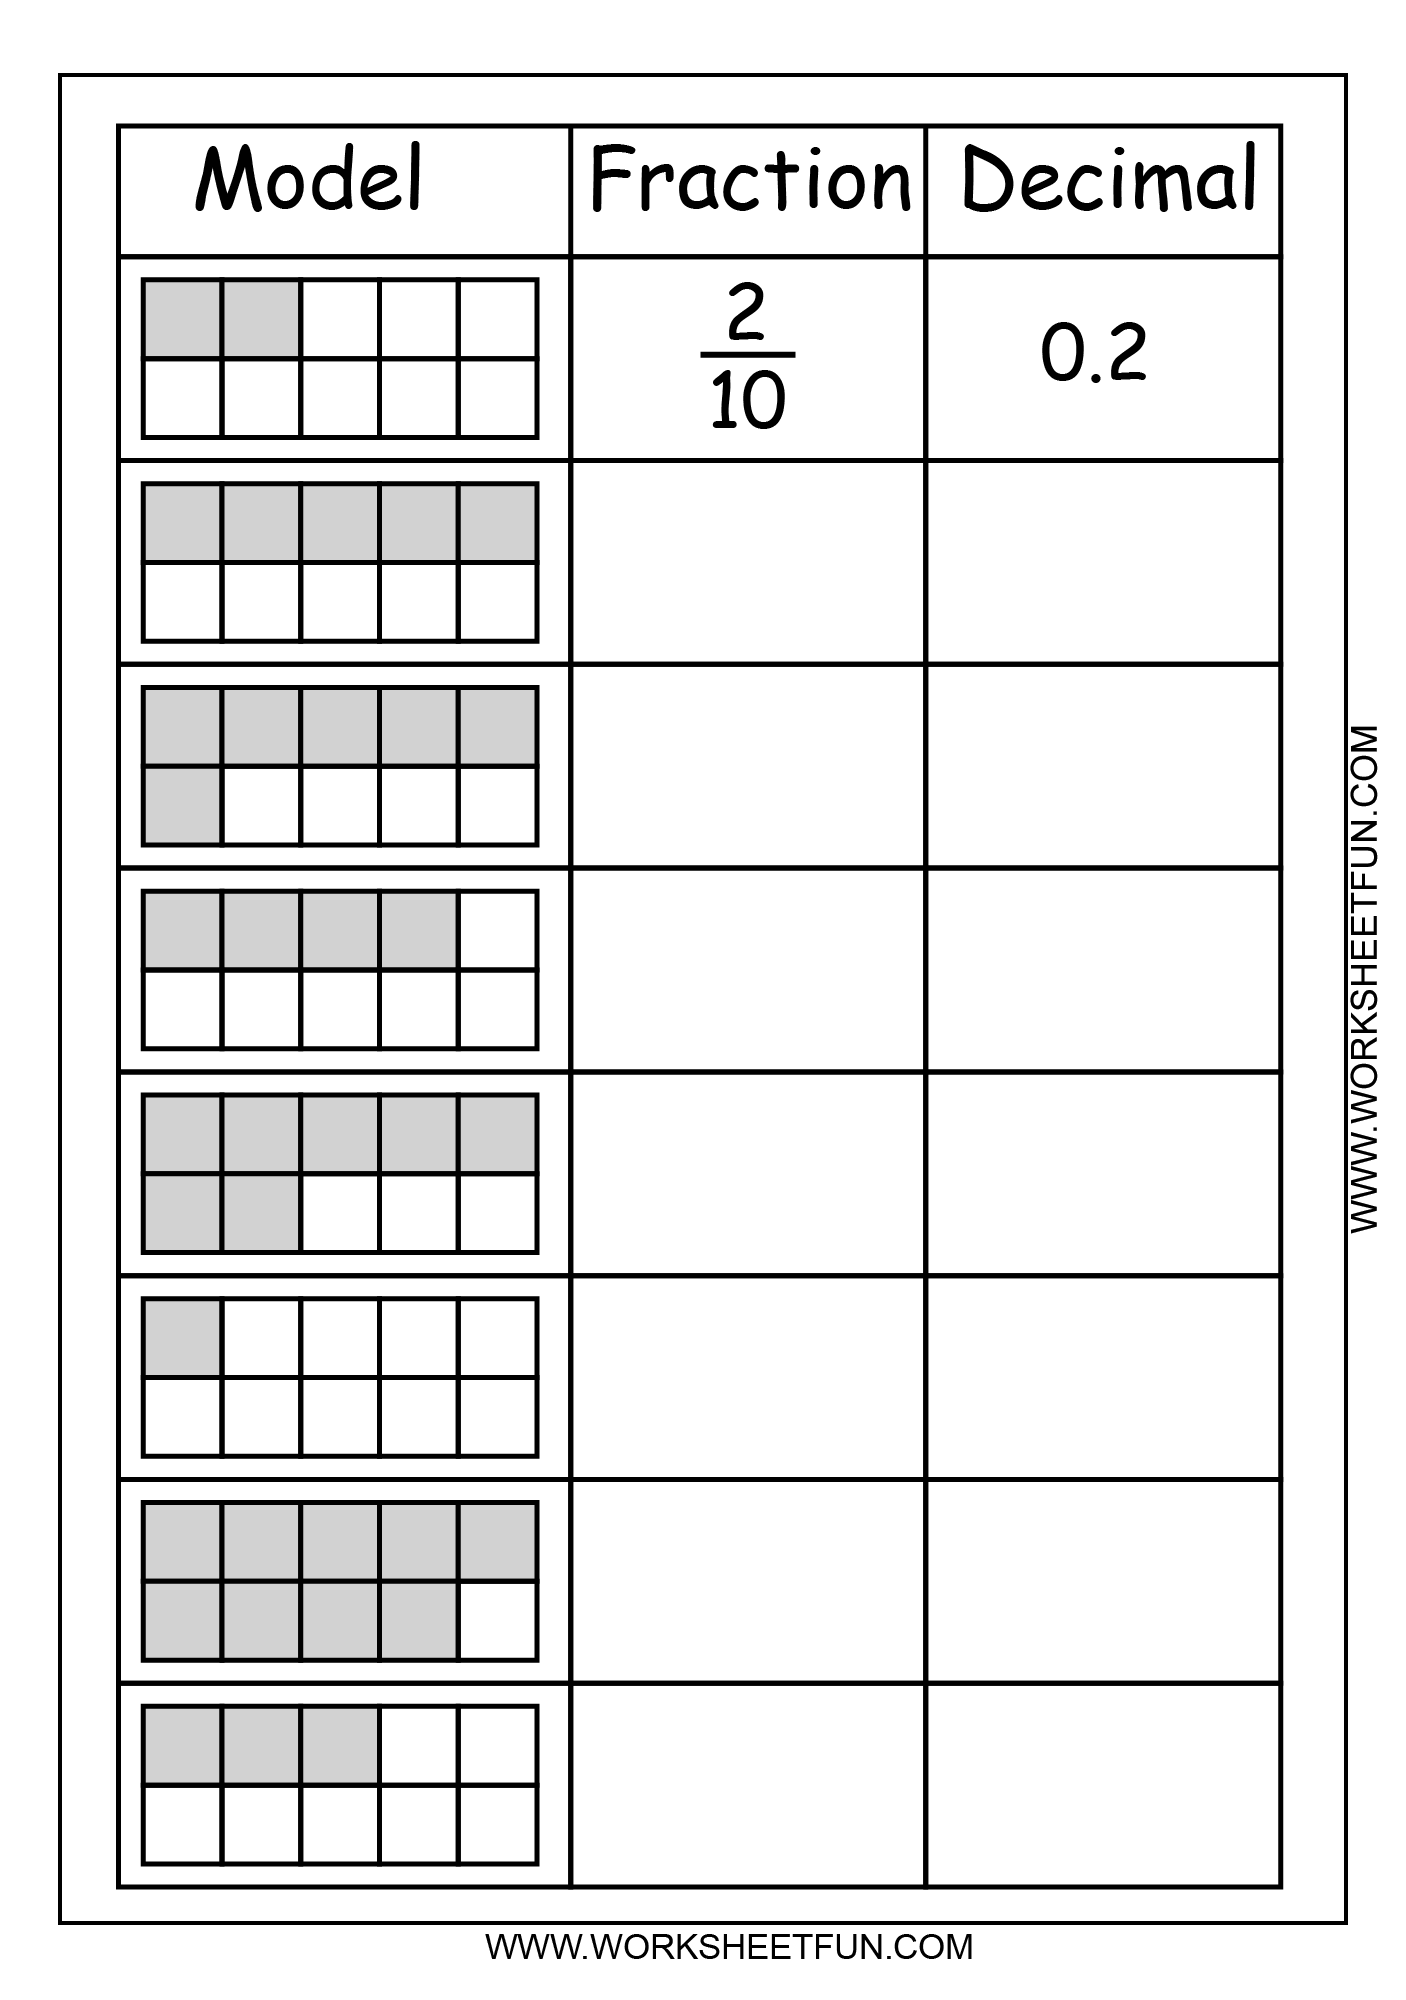 Model fraction decimal Printable Worksheets – Comparing Decimal Worksheet